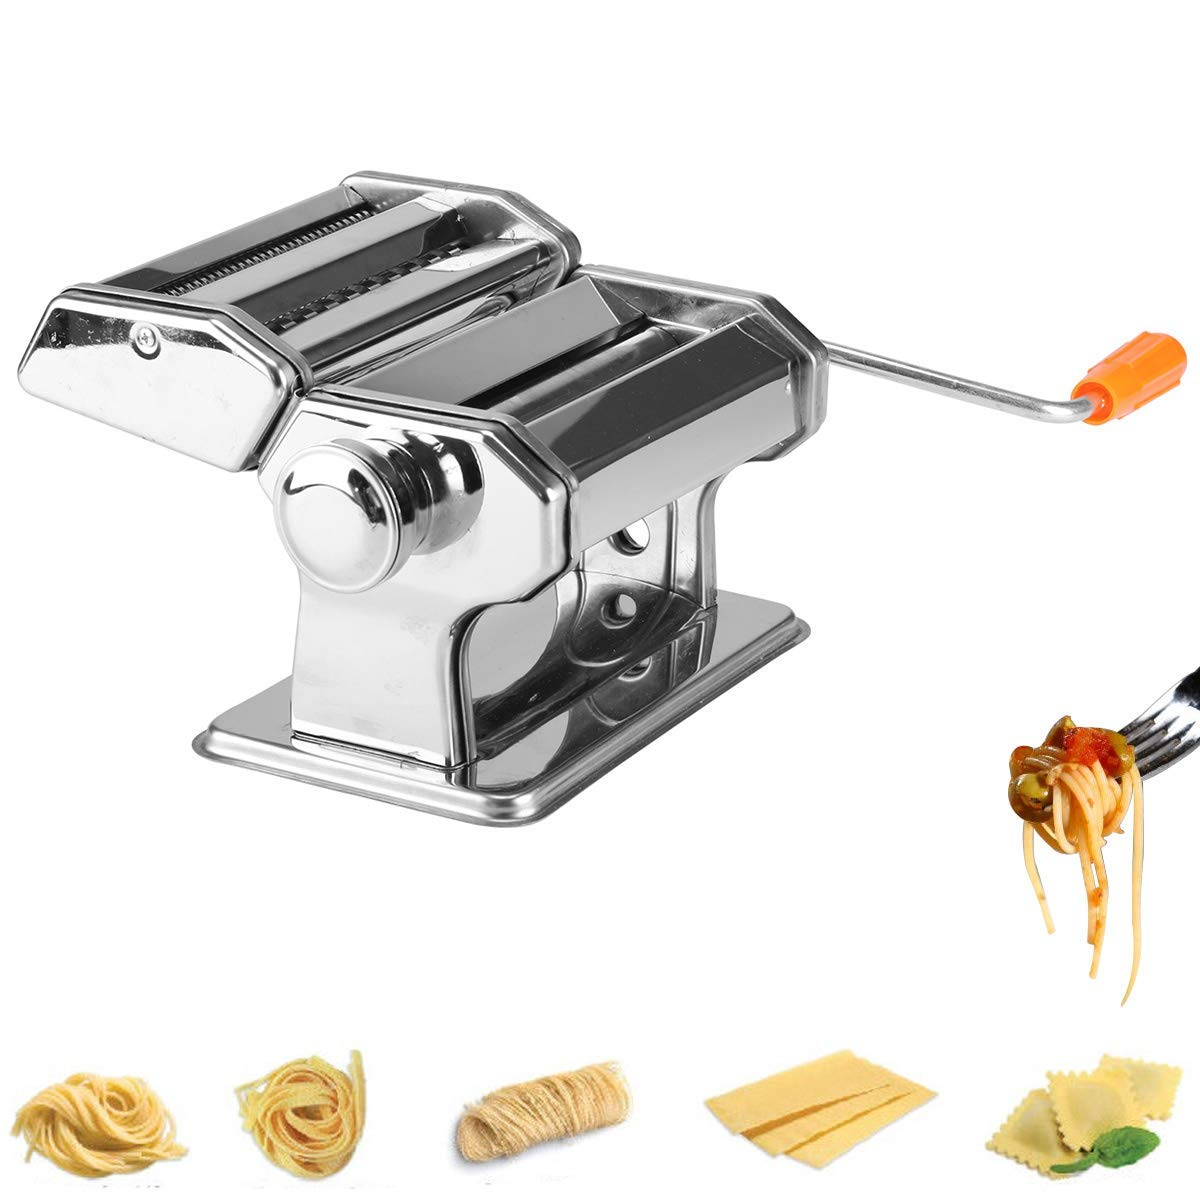 WXCCK Stainless Steel Pasta Maker,6 Adjustable Thickness Settings Make Perfect Spaghetti Or Fettuccini,Roller Lasagne Tagliatelle Cutter for Long Life by WXCCK